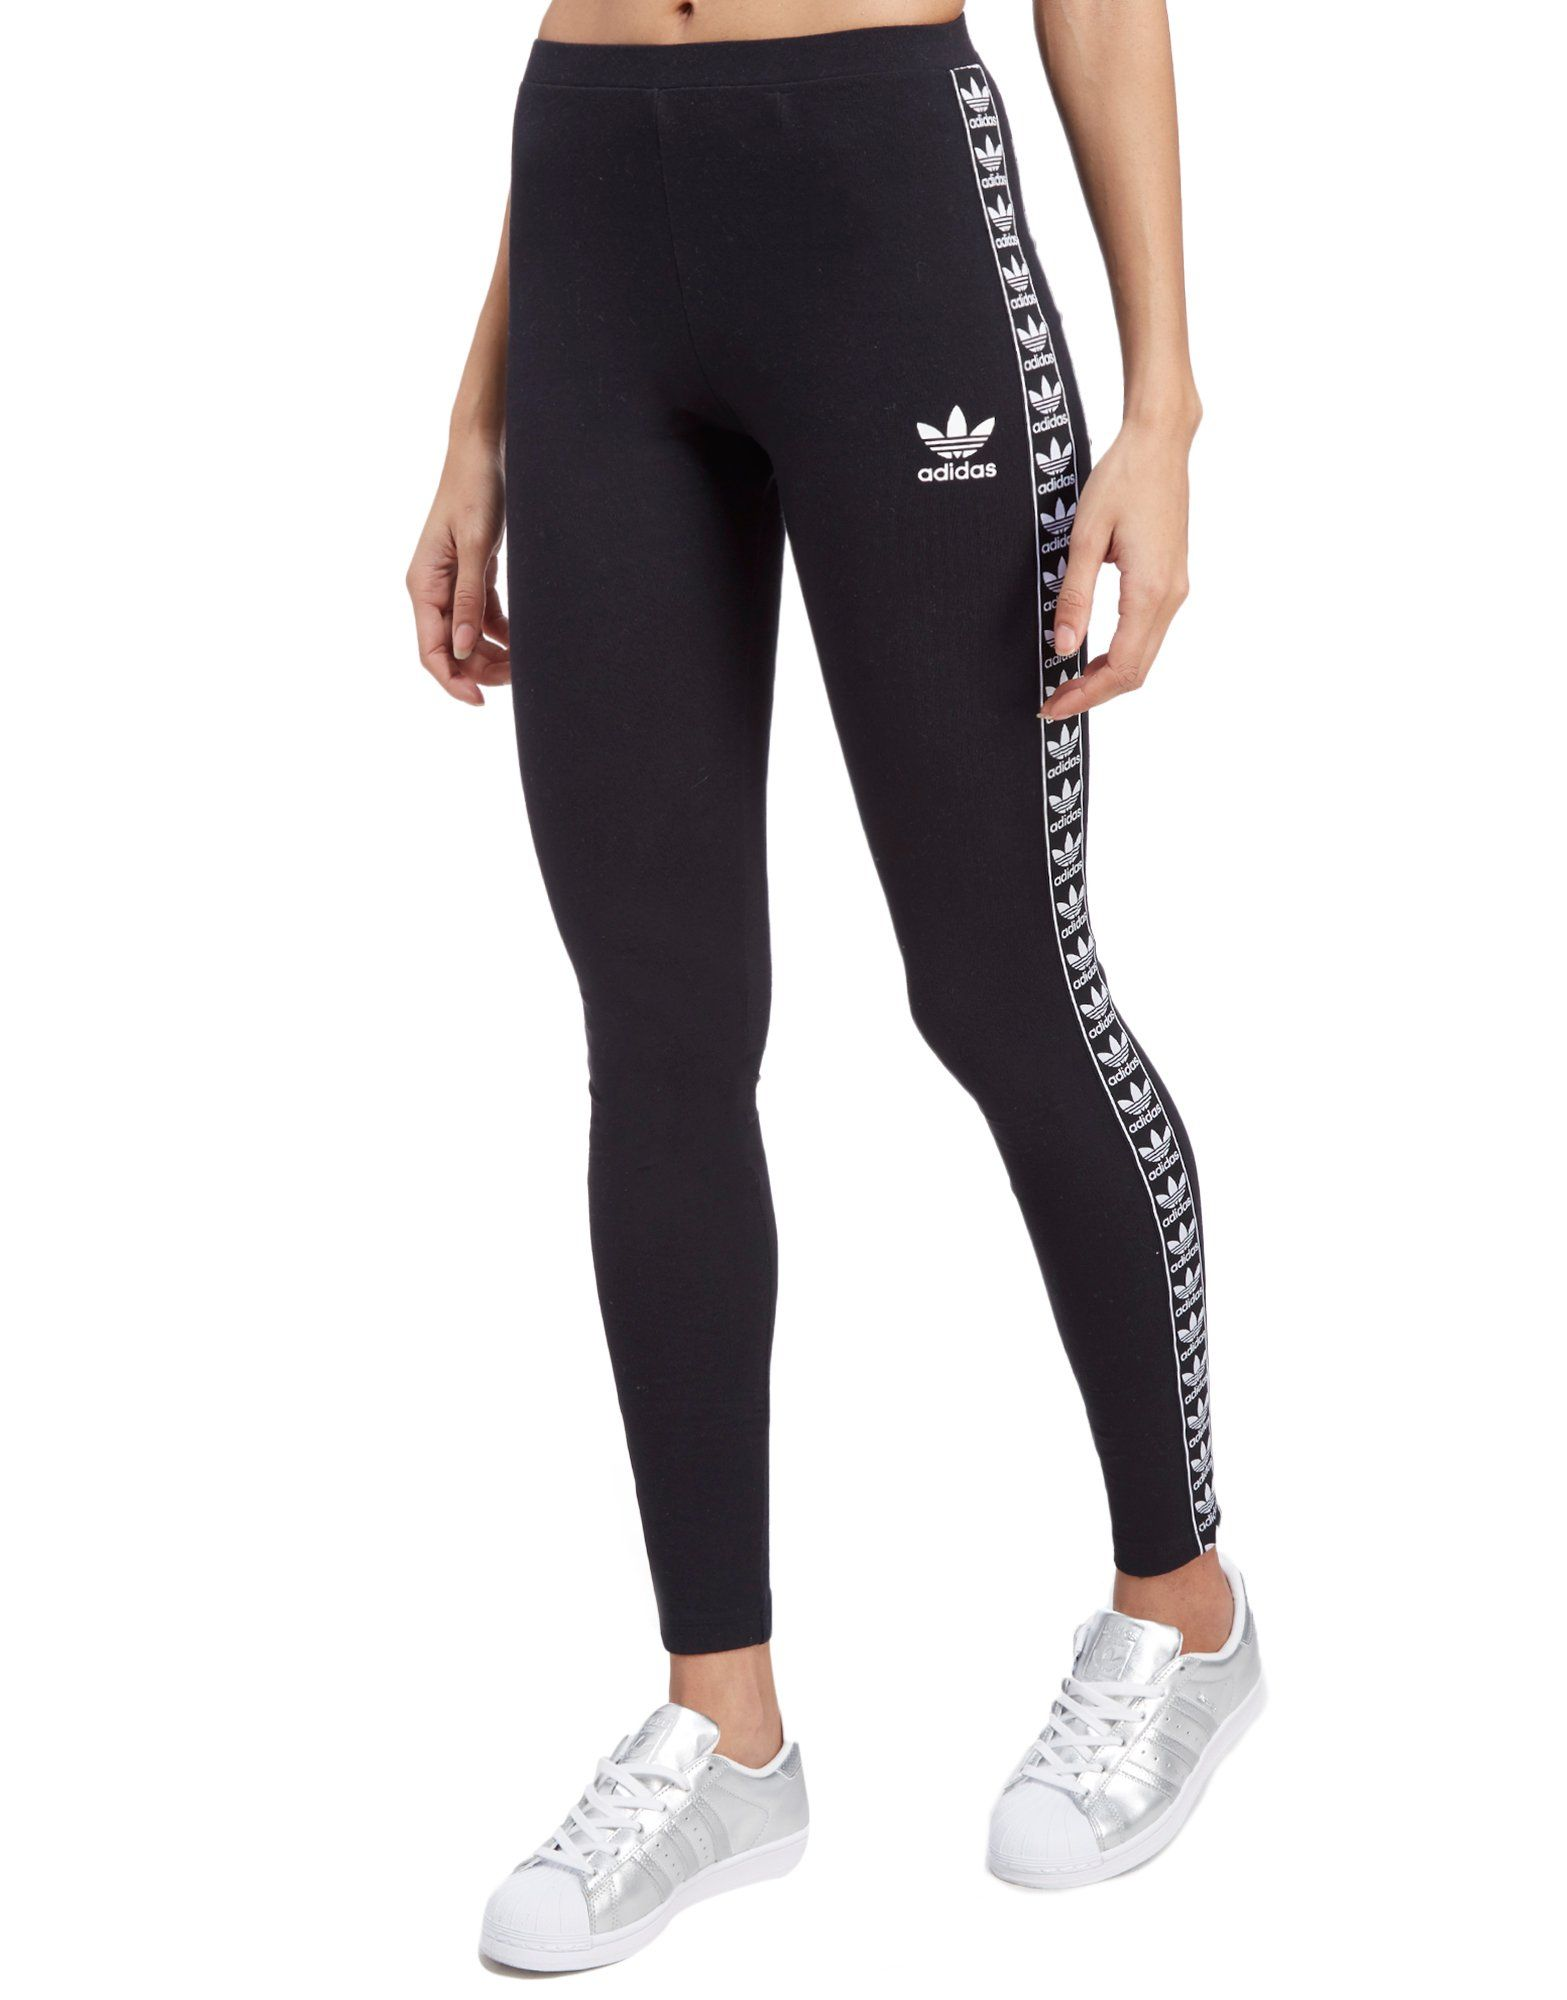 adidas leggings womens. adidas leggings womens o